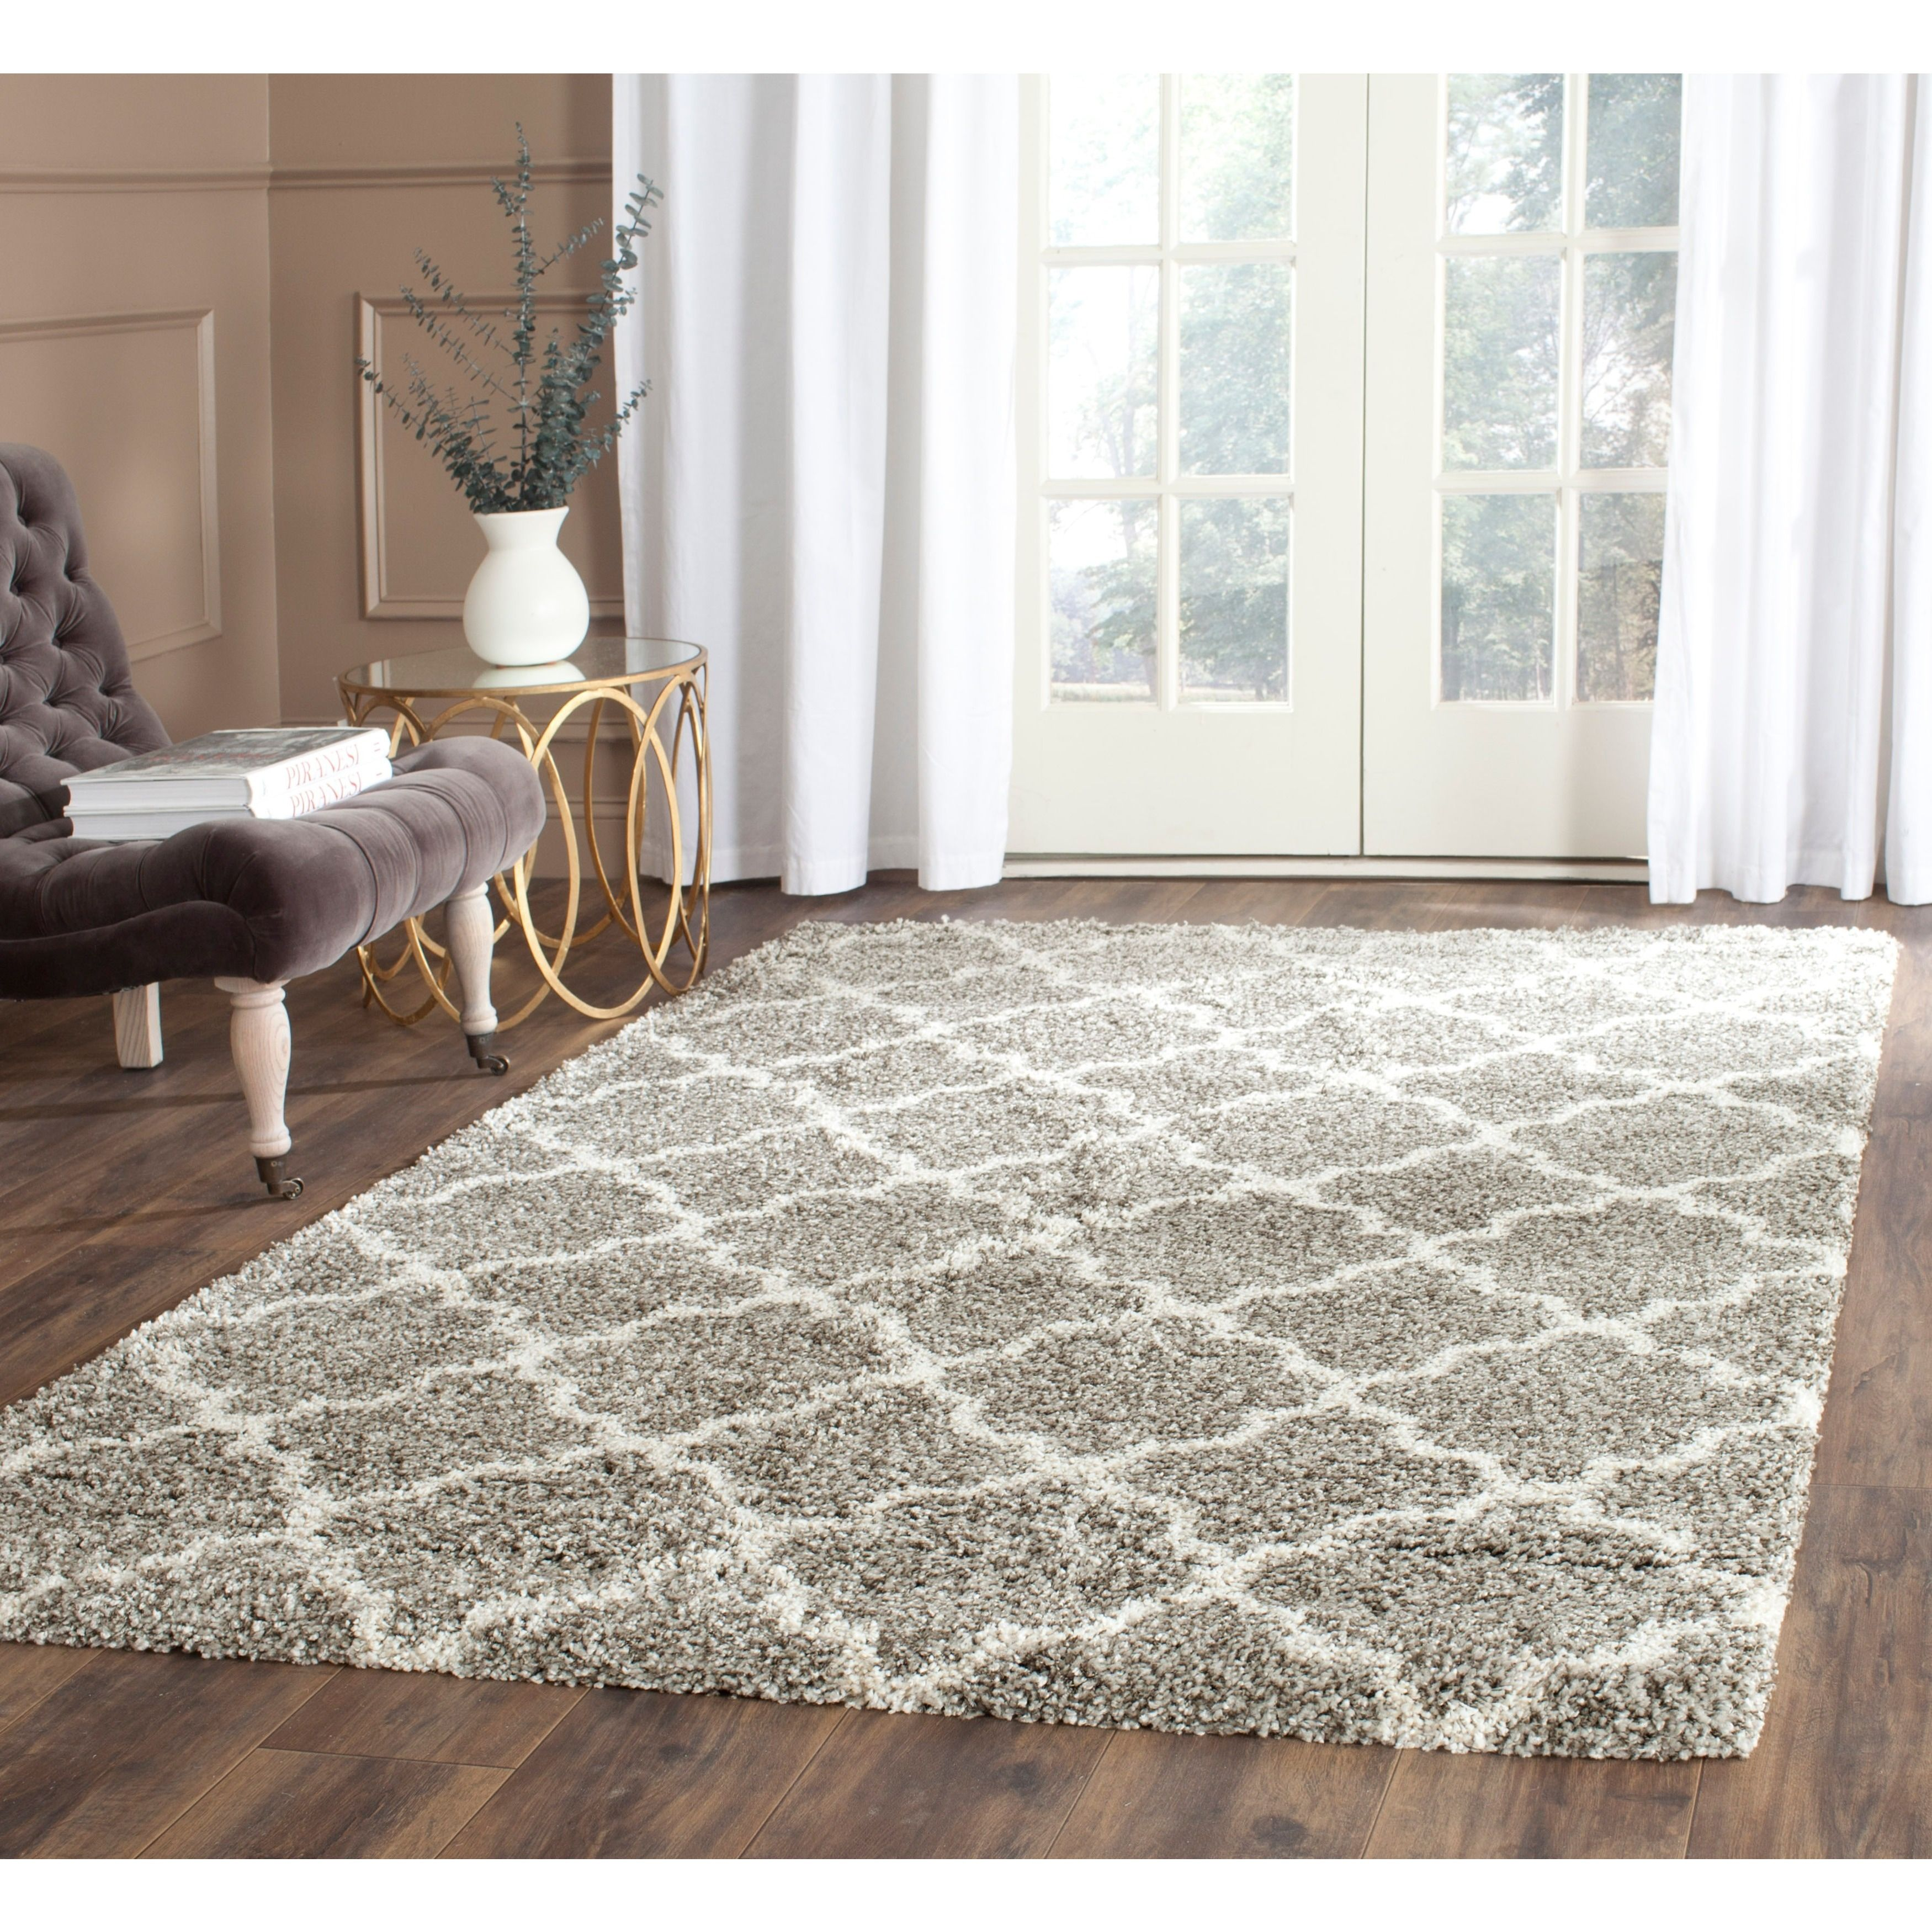 area near on rugs lamp chandelier living design me simple dark floors colorful room for wooden of hardwood armchair sale walmart size pillows full kohls floor placement best red modern rug ideas diy dorm home cabinet depot trends decorating furniture clearance